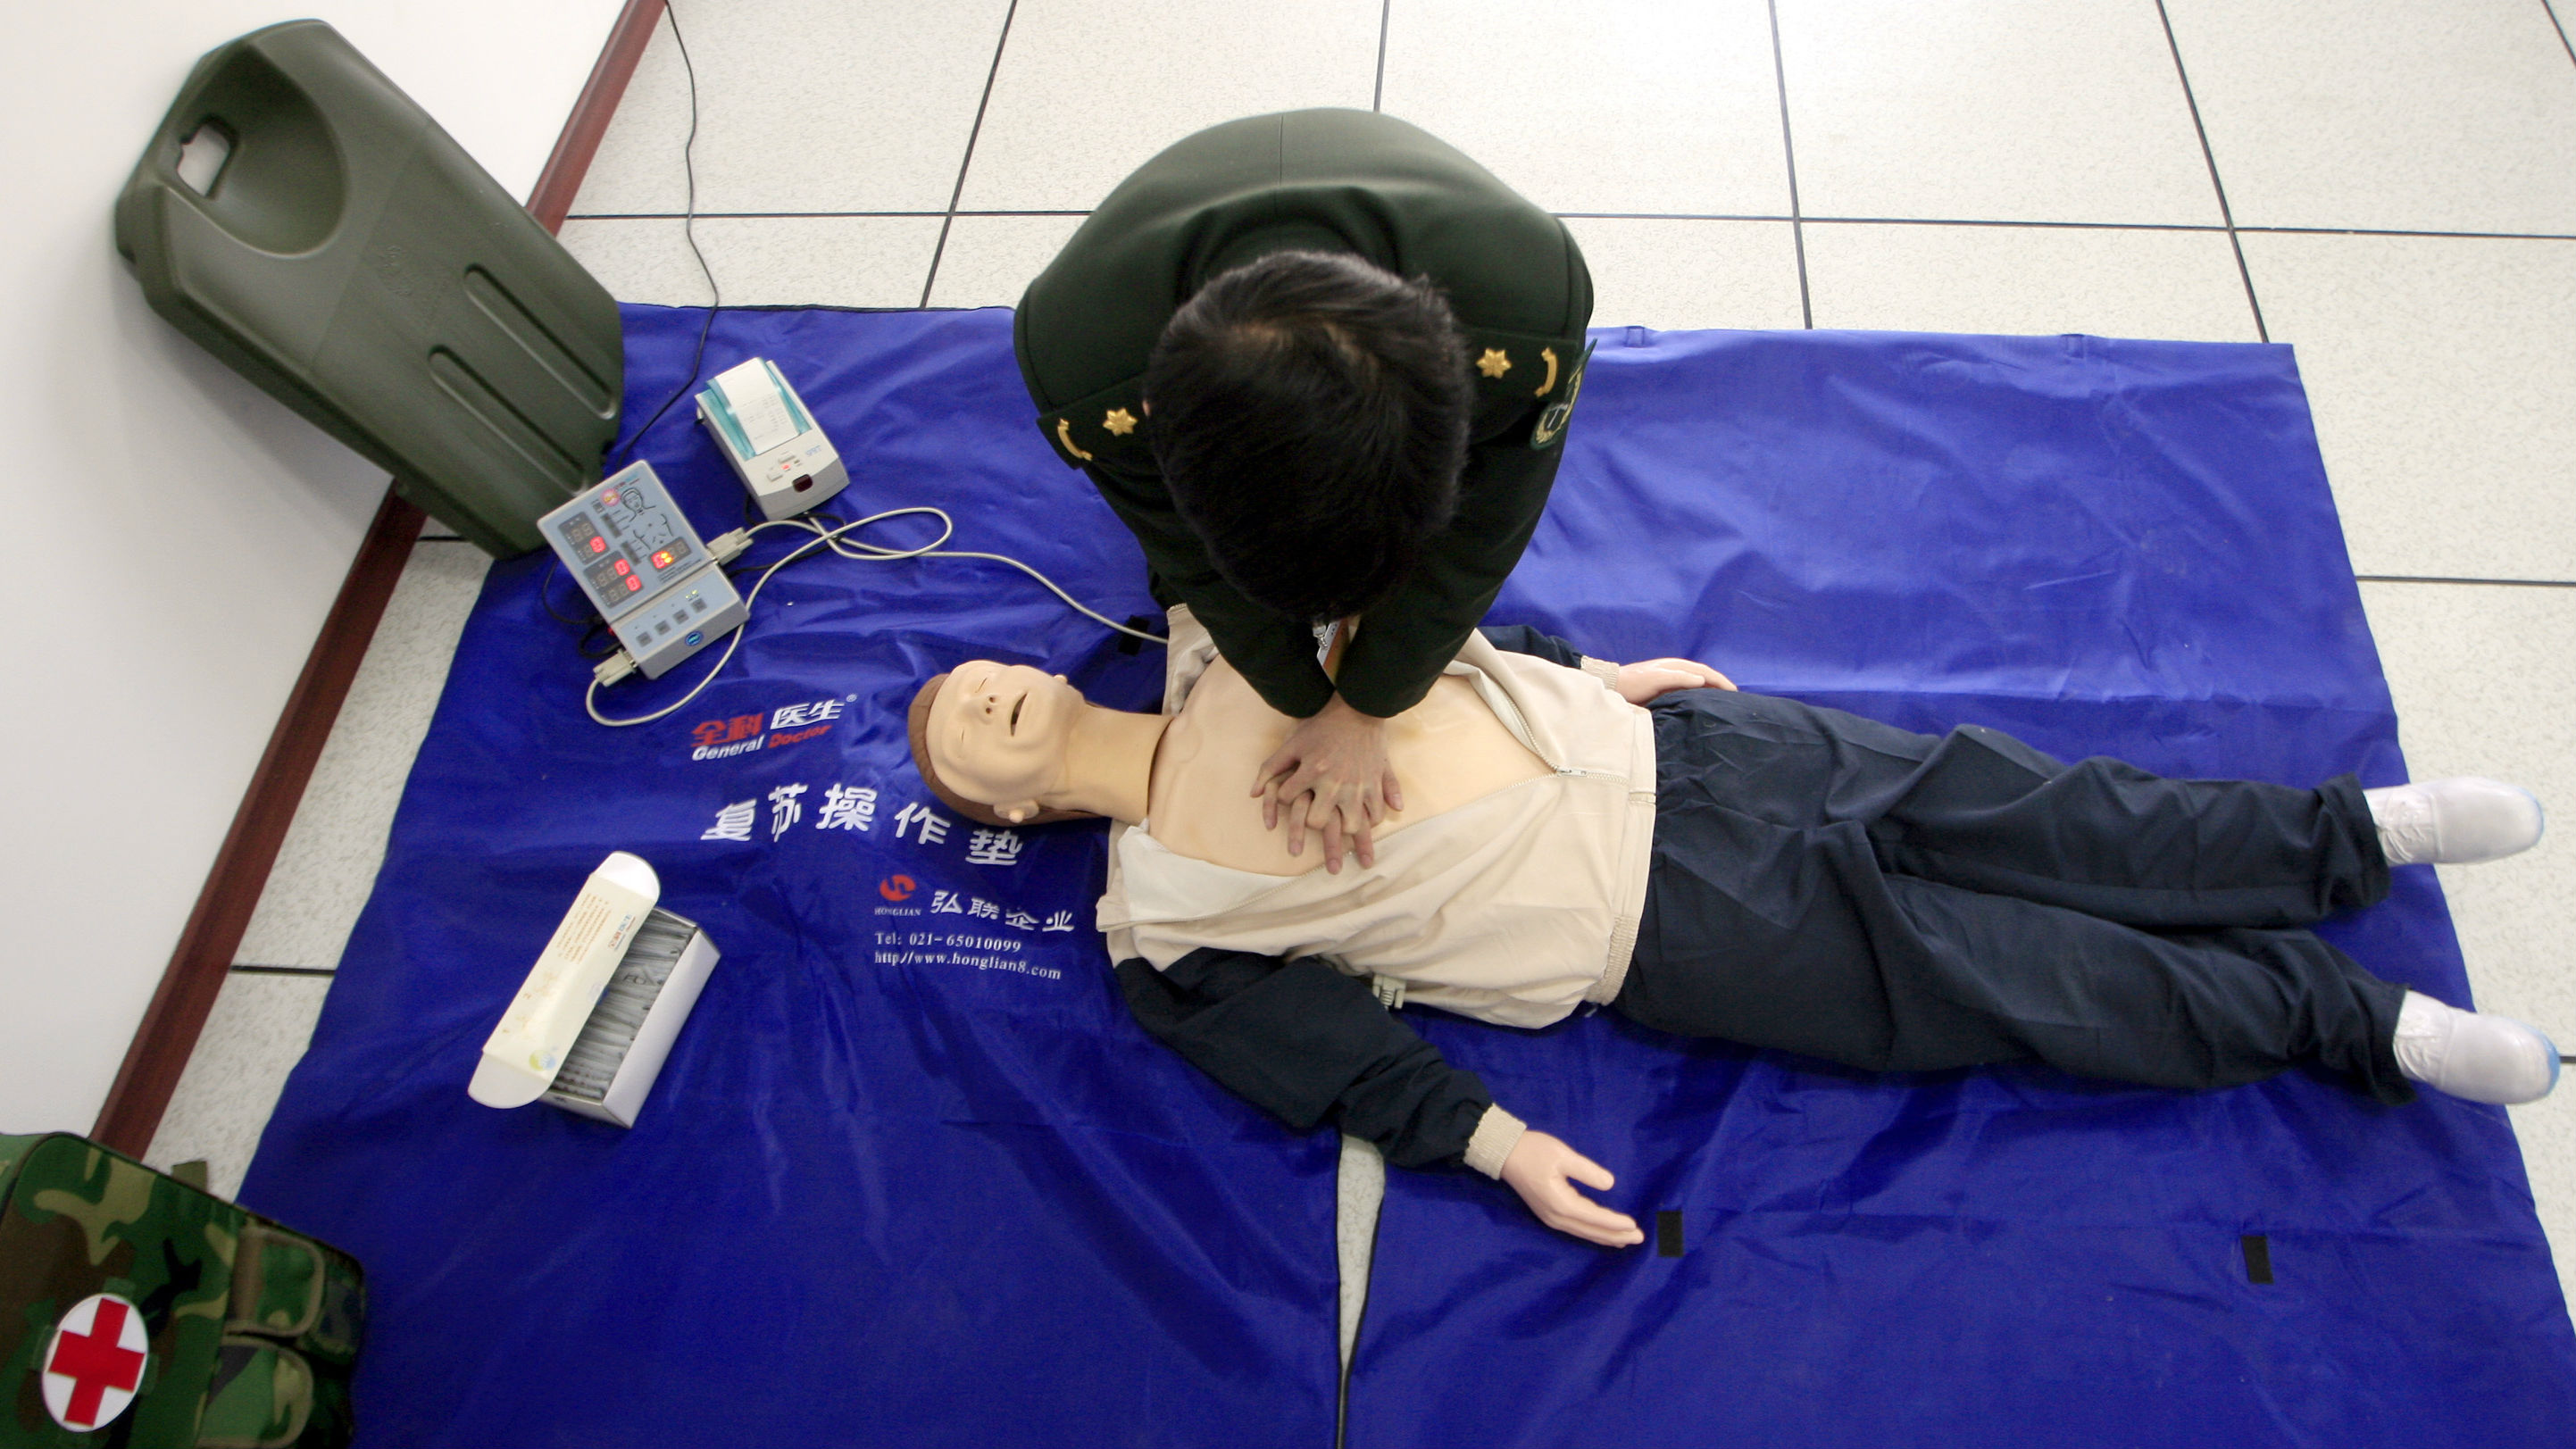 A People's Liberation Army (PLA) soldier practices his resuscitation techniques during a briefing at a new training centre for the army's peacekeeping troops in the town of Huairou, located on the outskirts of Beijing November 19, 2009. A lack of proficiency in English has been one of the main factors hindering Chinese peacekeeping forces in their missions overseas, officials said on Thursday.